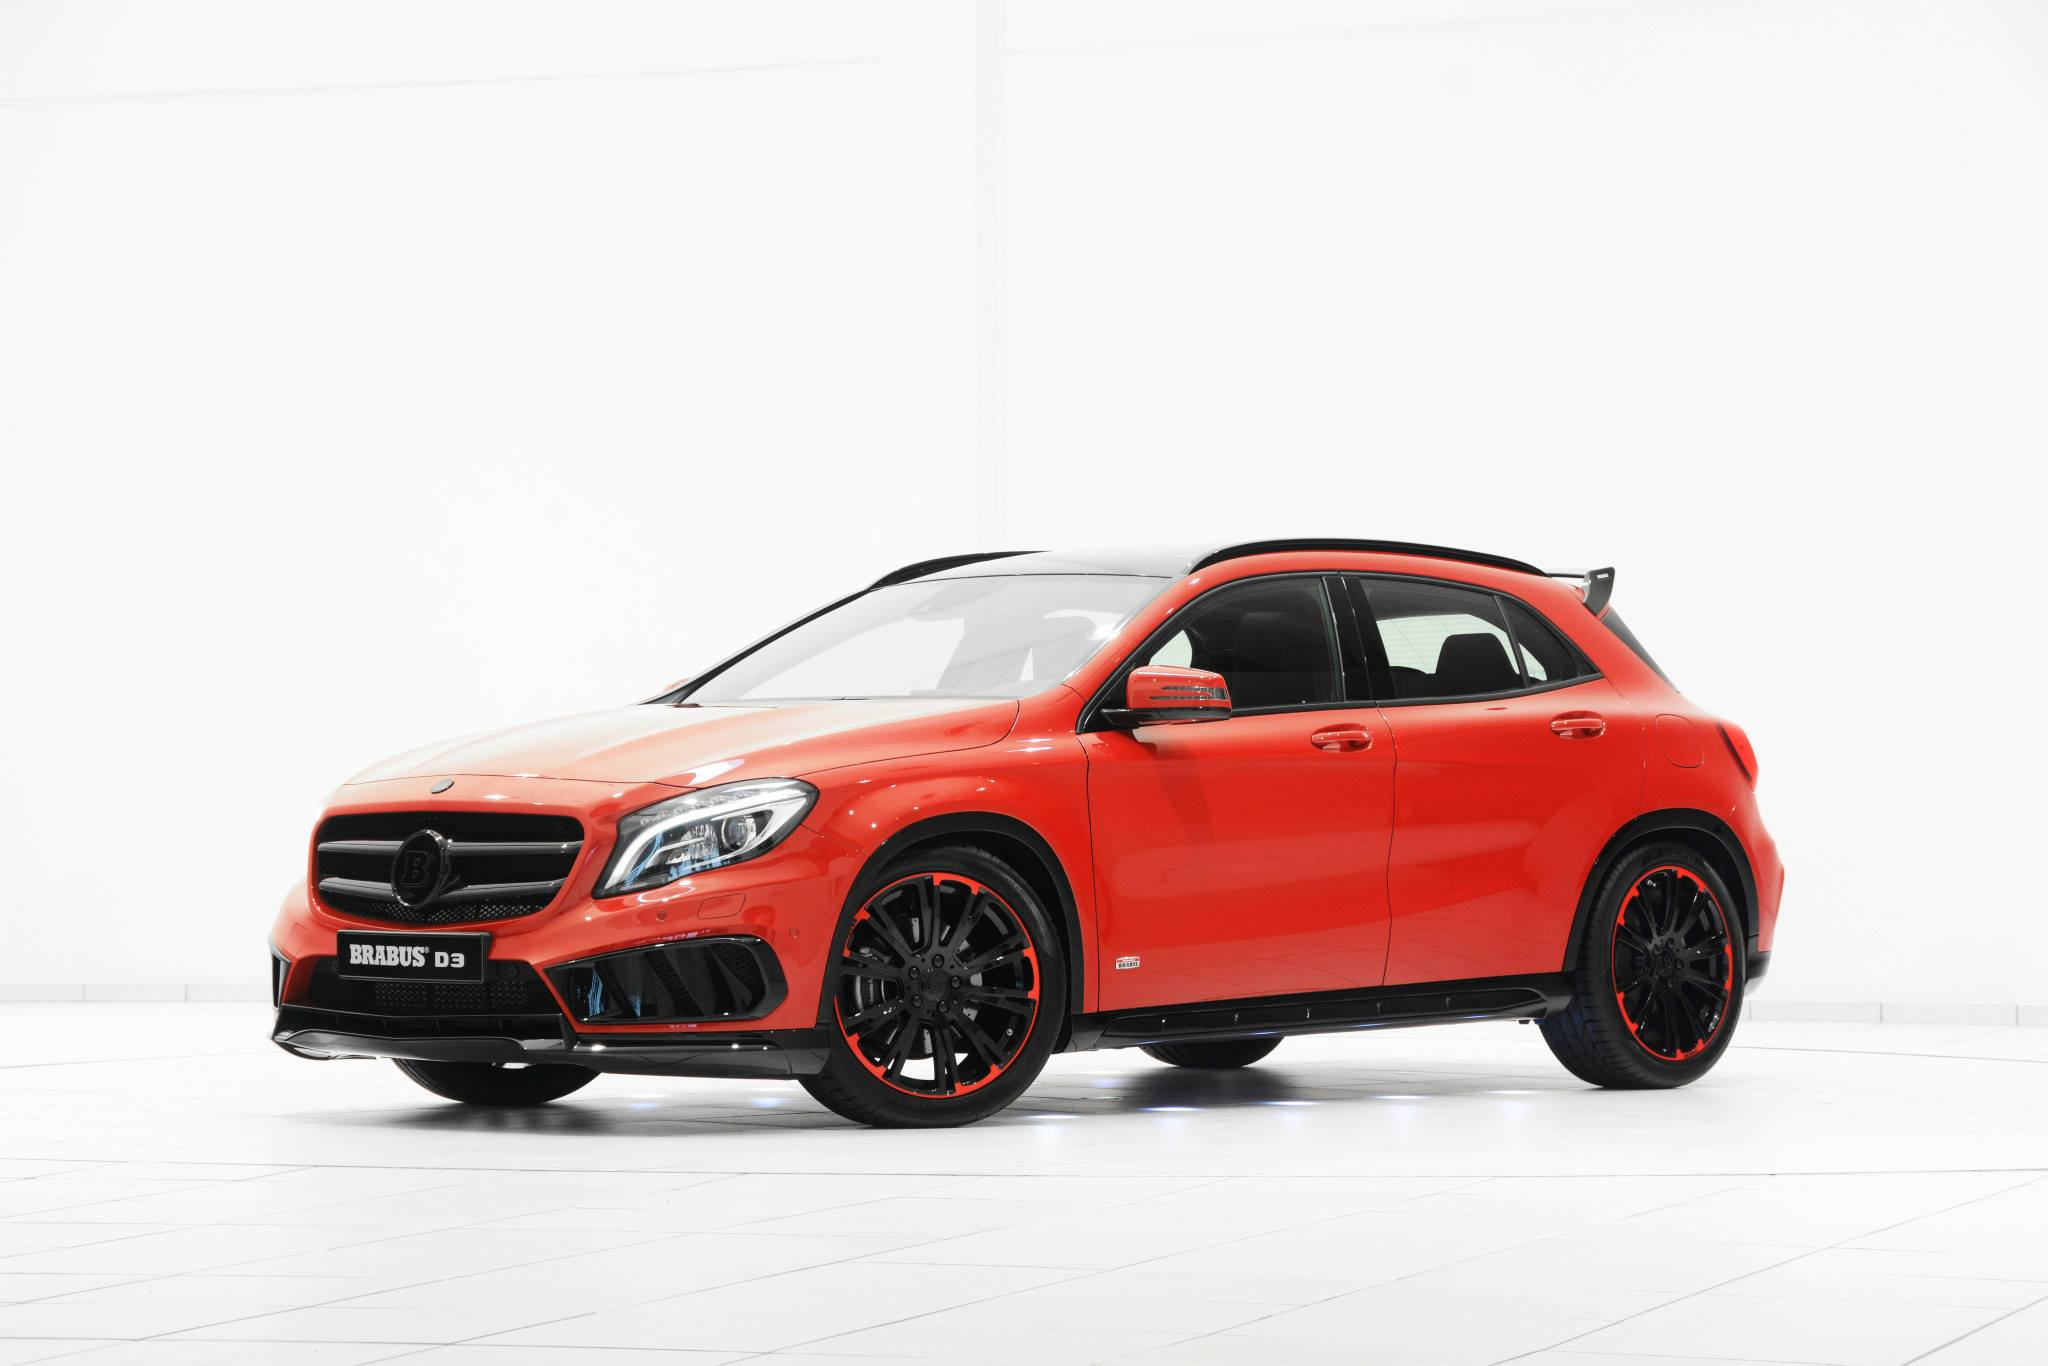 brabus-tuned-mercedes-gla-looks-stunning-in-red-and-black-gets-diesel ...